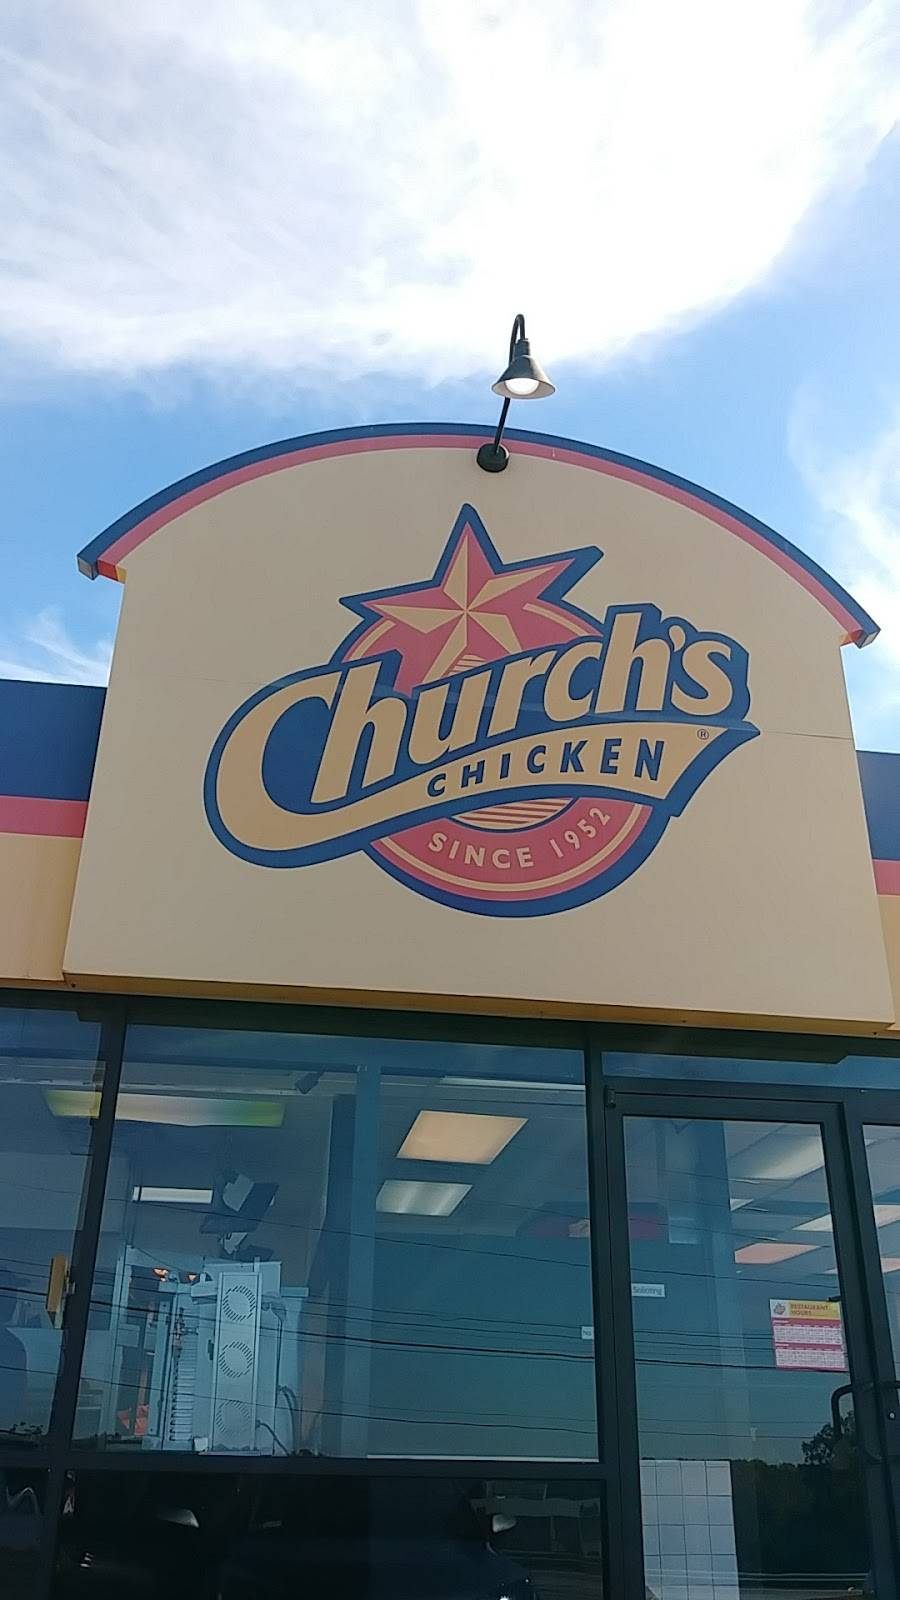 Churchs Chicken | restaurant | 2700 Candler Rd, Decatur, GA 30034, USA | 4042412116 OR +1 404-241-2116